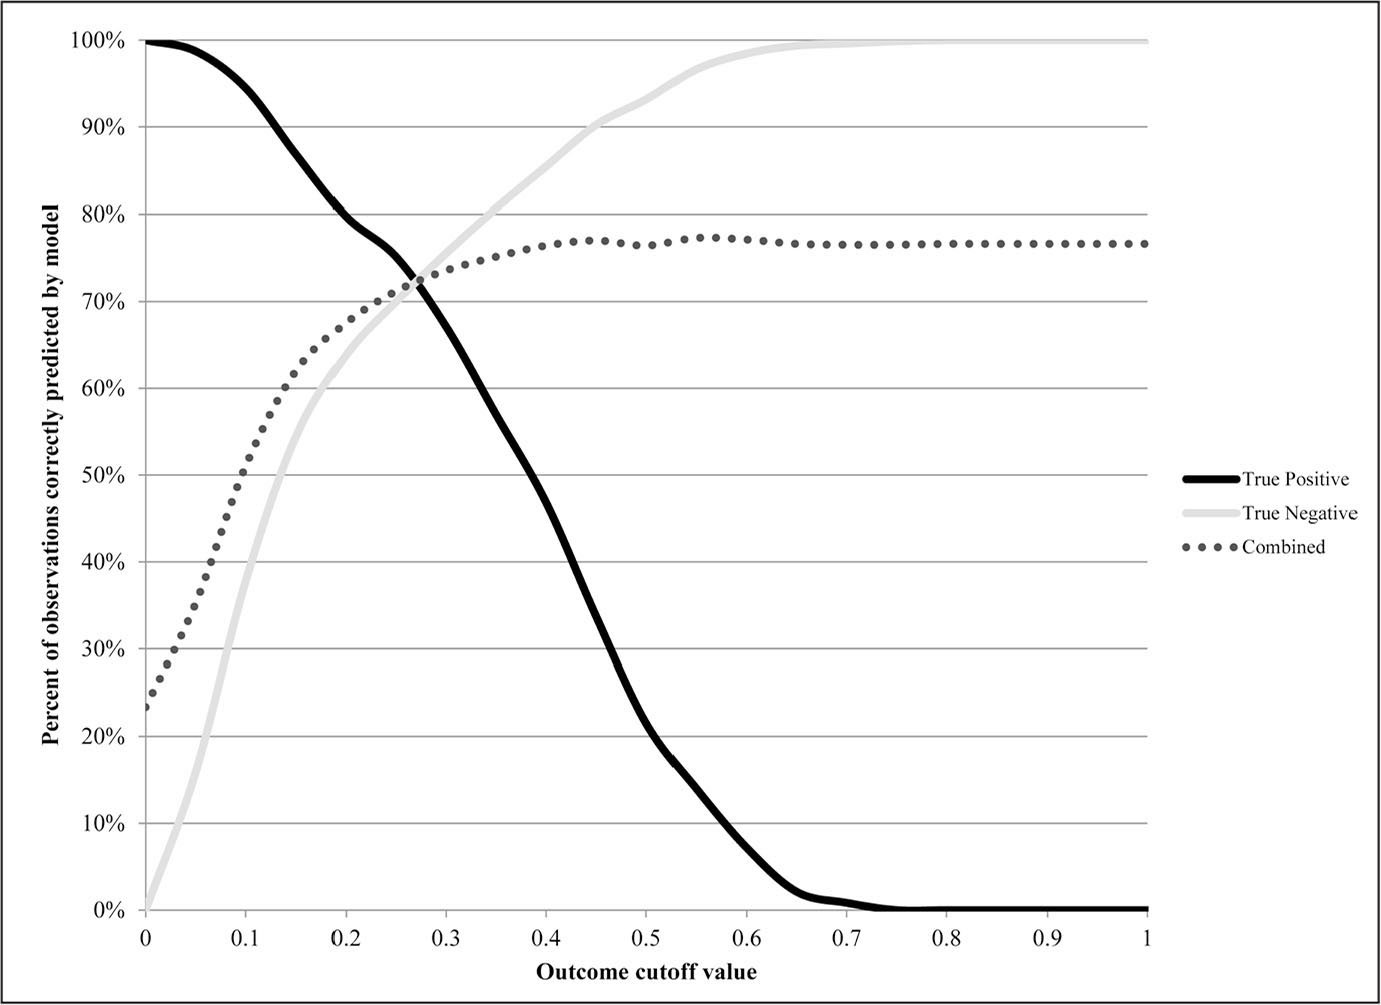 Predictive ability of the function derived from the multivariate logistic regression model compared with actual observations in the study at all outcome cutoff values. The best overall predictive performance was achieved with a return to work outcome cutoff value of 0.55, where 1=will return to work and 0=will not return to work. At and above this value, the model accurately predicted subjects who would not return to work at a rate greater than 96%.